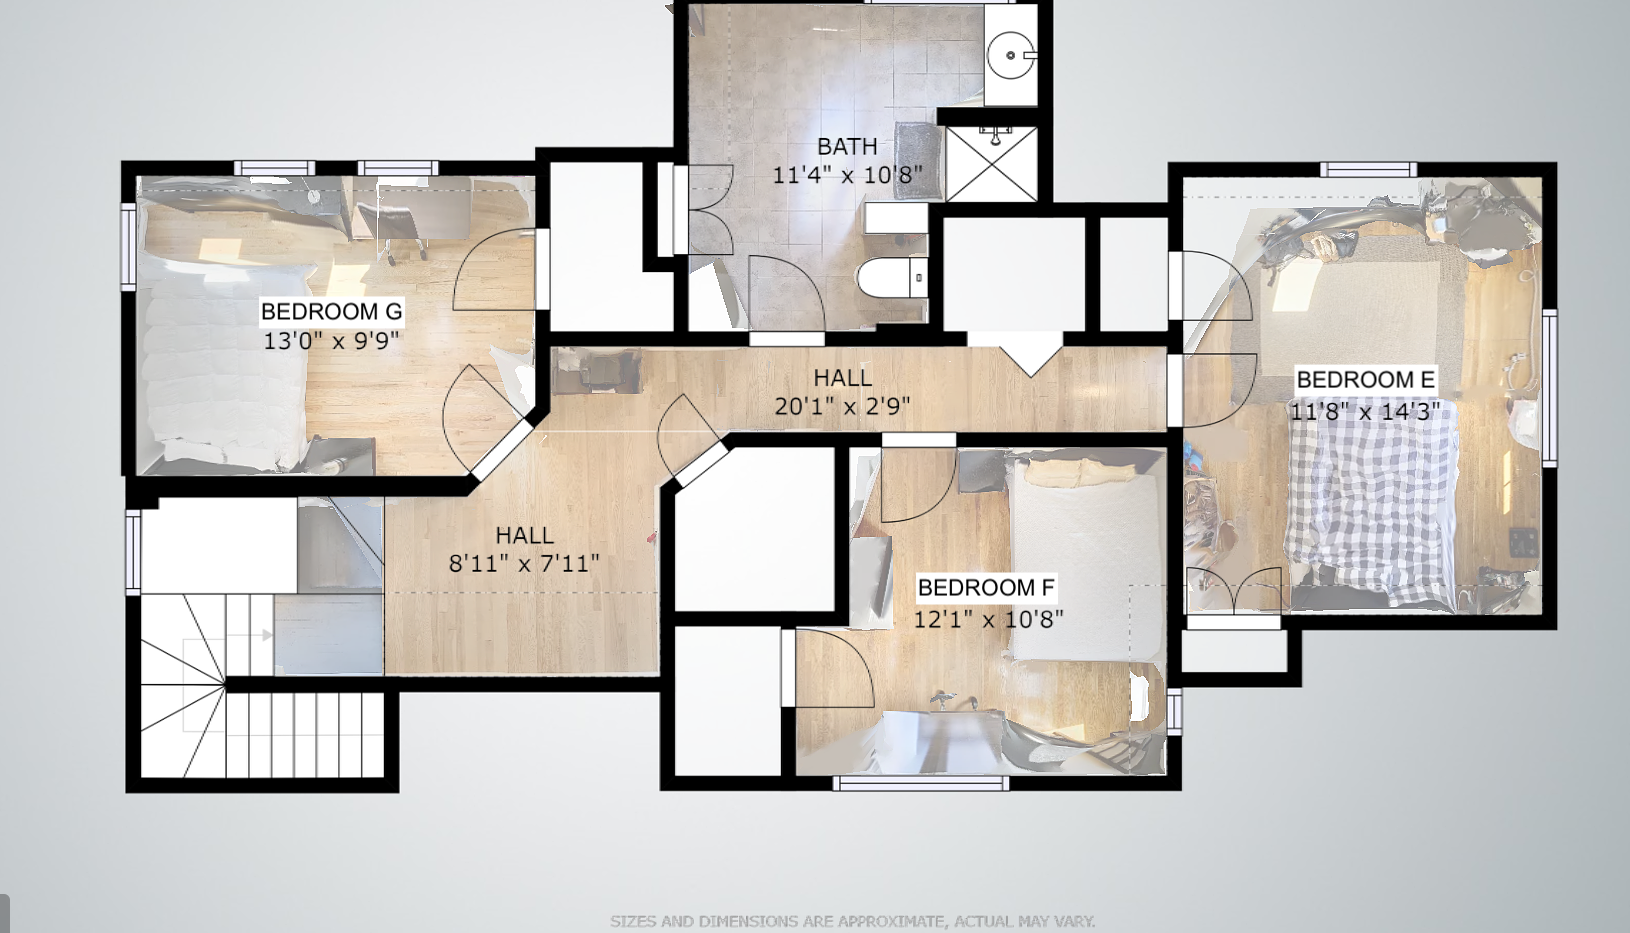 4th Floor Floorplan